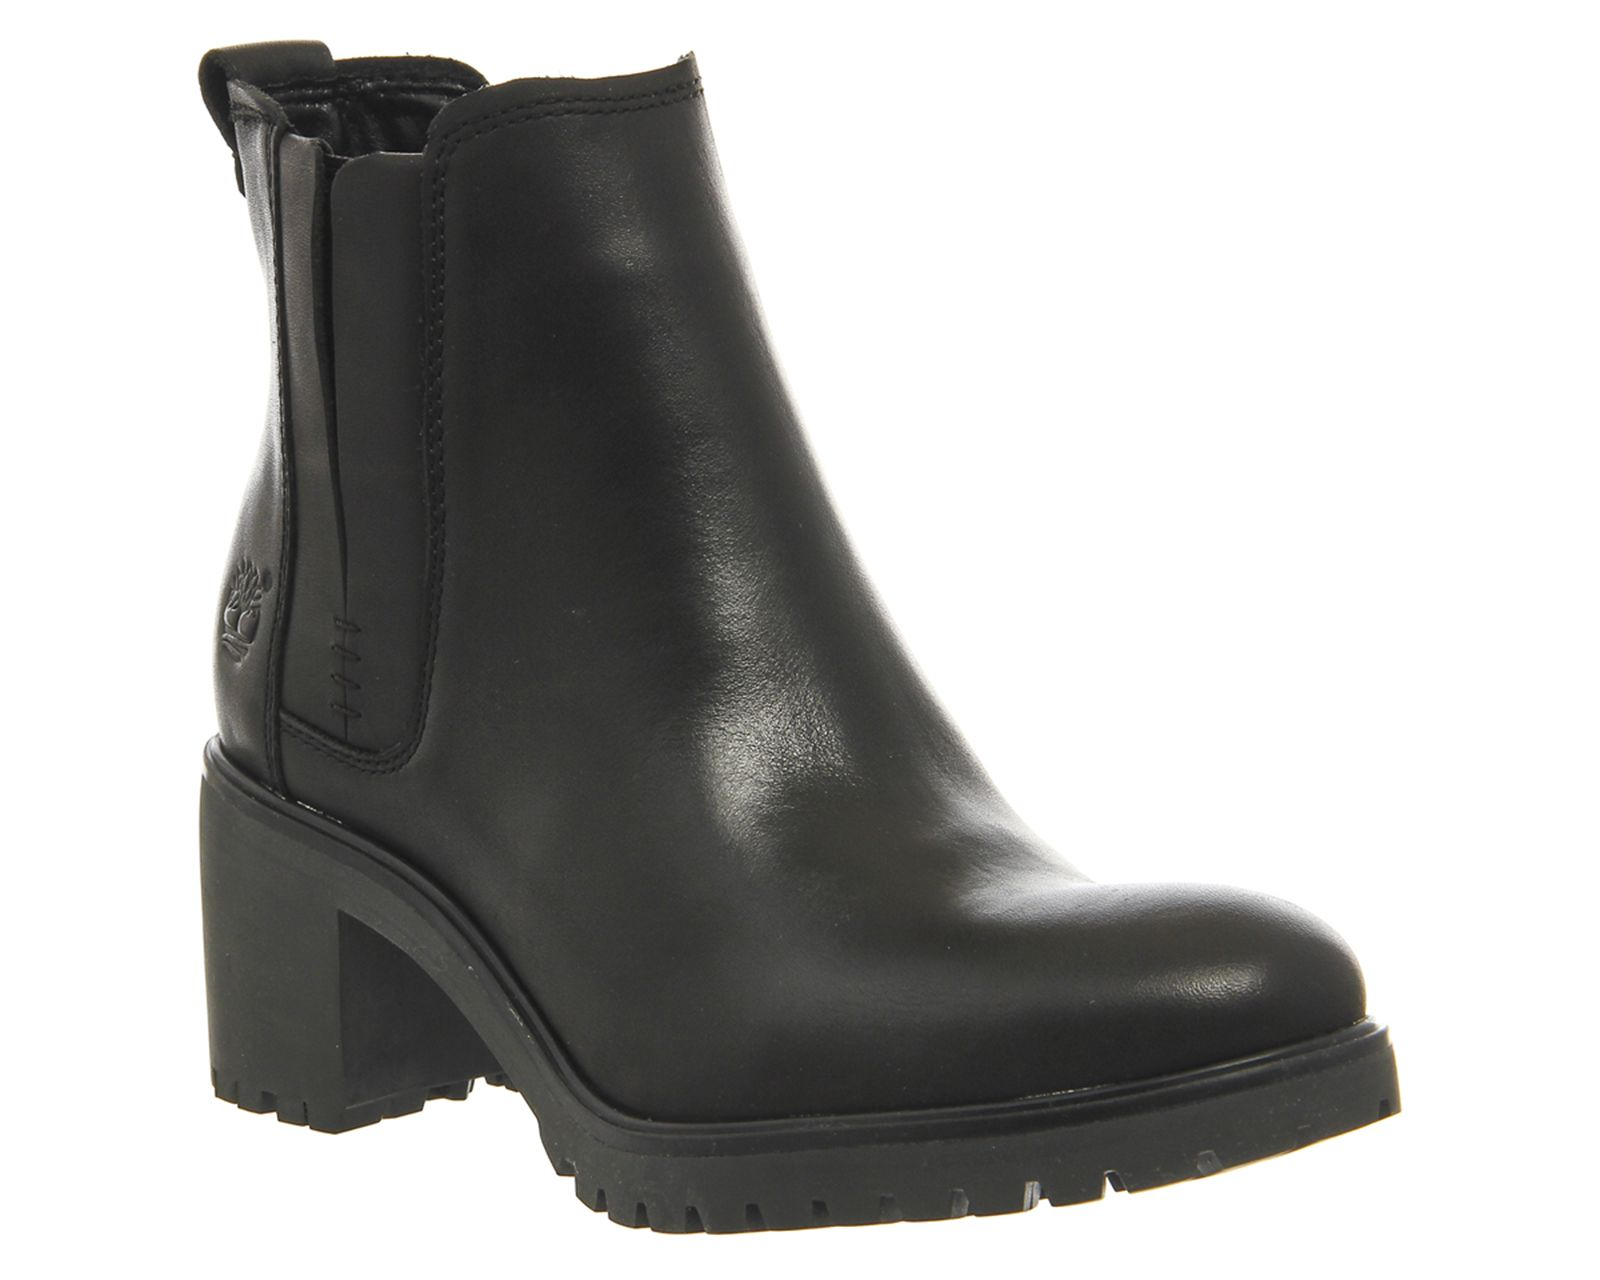 Timberland Averly Chelsea Black Smooth Leather Ankle Boots